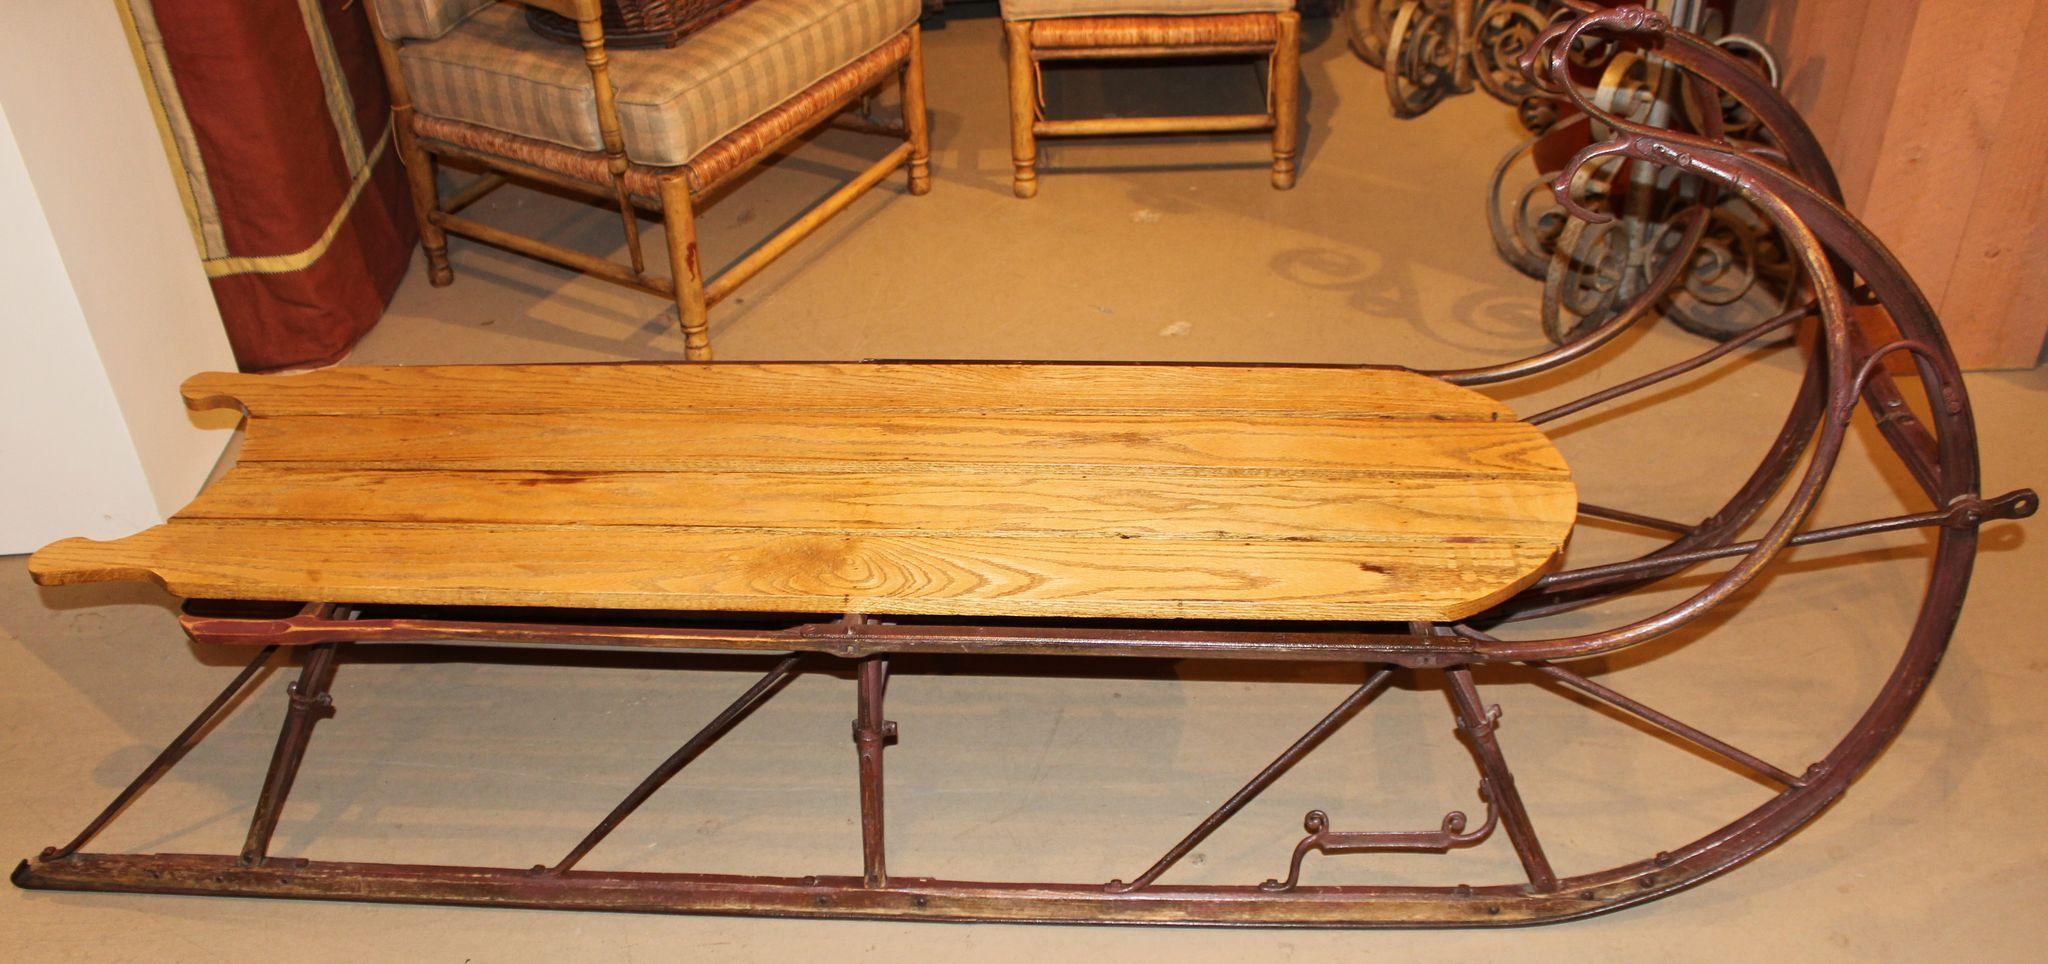 Sleigh coffee table coffee table in the form of a sled at 1stdibs oak sleigh form coffee Antique sleigh coffee table